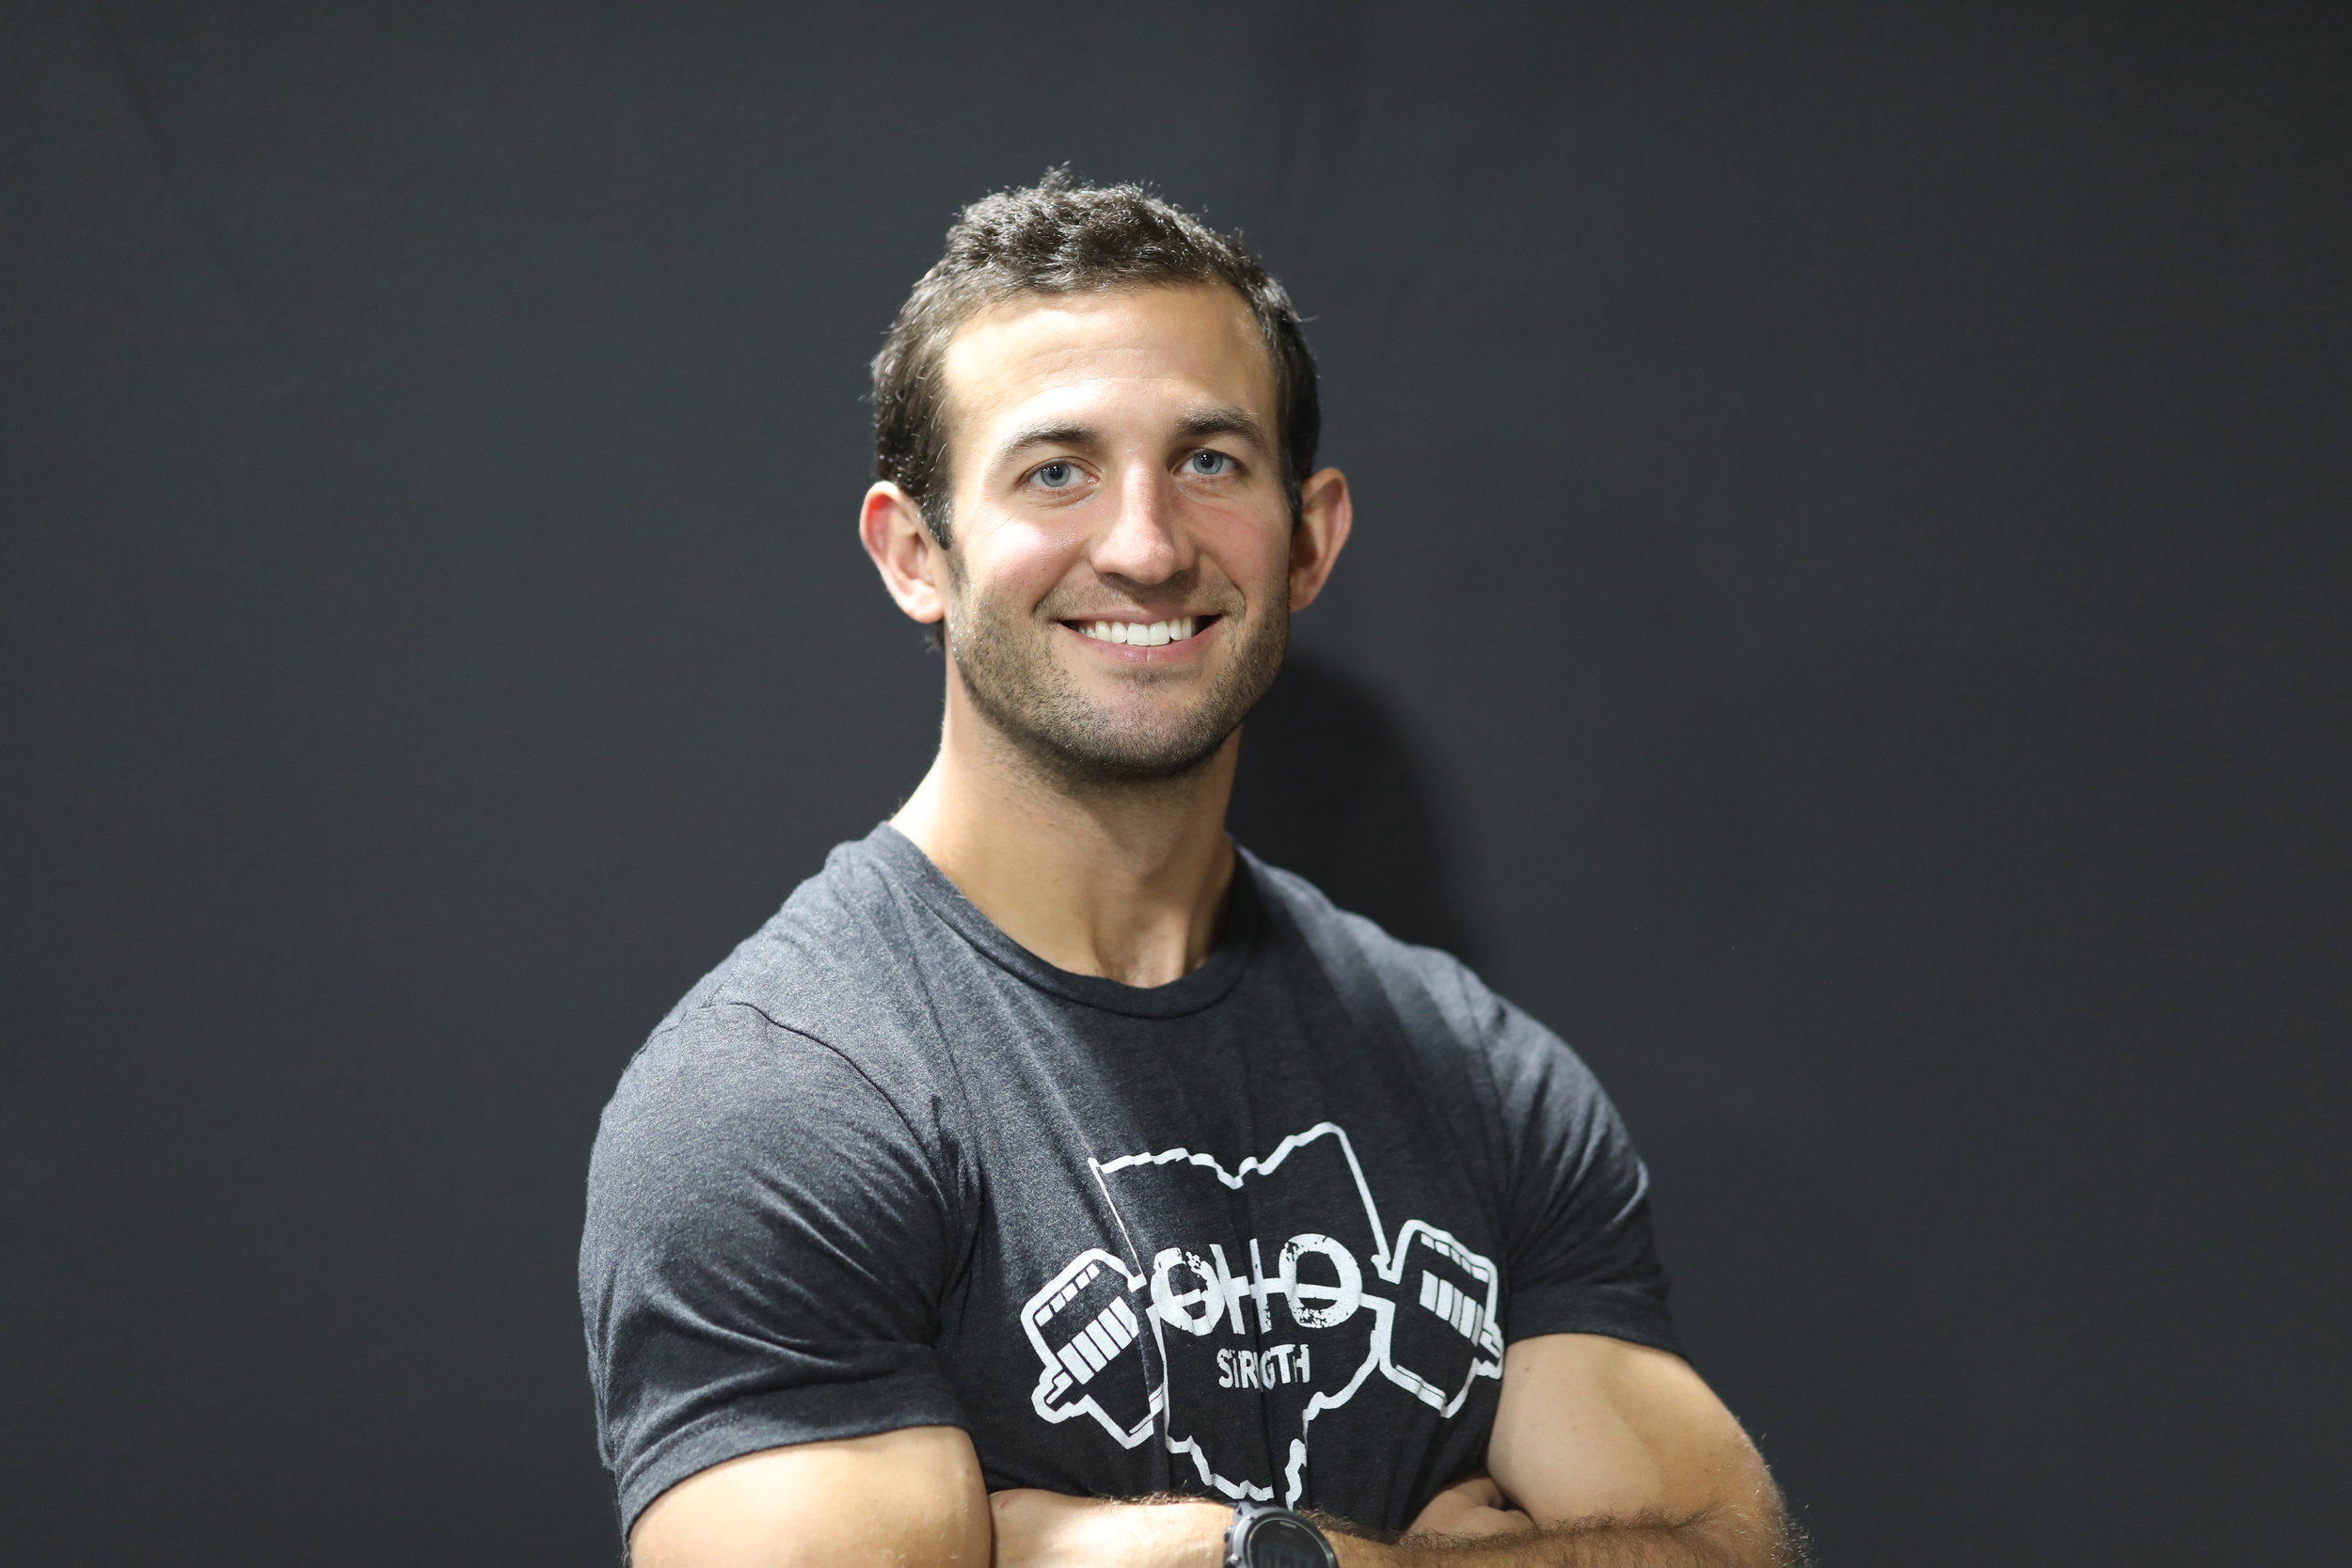 Ryan McFadyen - Owner   BS Ed. Exercise Science Education, Nutrition minor  MBA  CrossFit Level 1 & 2, Judges Course and Scaling Course  USA Weightlifting Level 1 Sports Performance Coach  Sports Nutritionist, ISSN  Licensed Massage Therapist  RYT 200  Prokreate - Pre and Postnatal Strength Seminar  Red Cross CPR and AED  Favorite Movement: Power Cleans